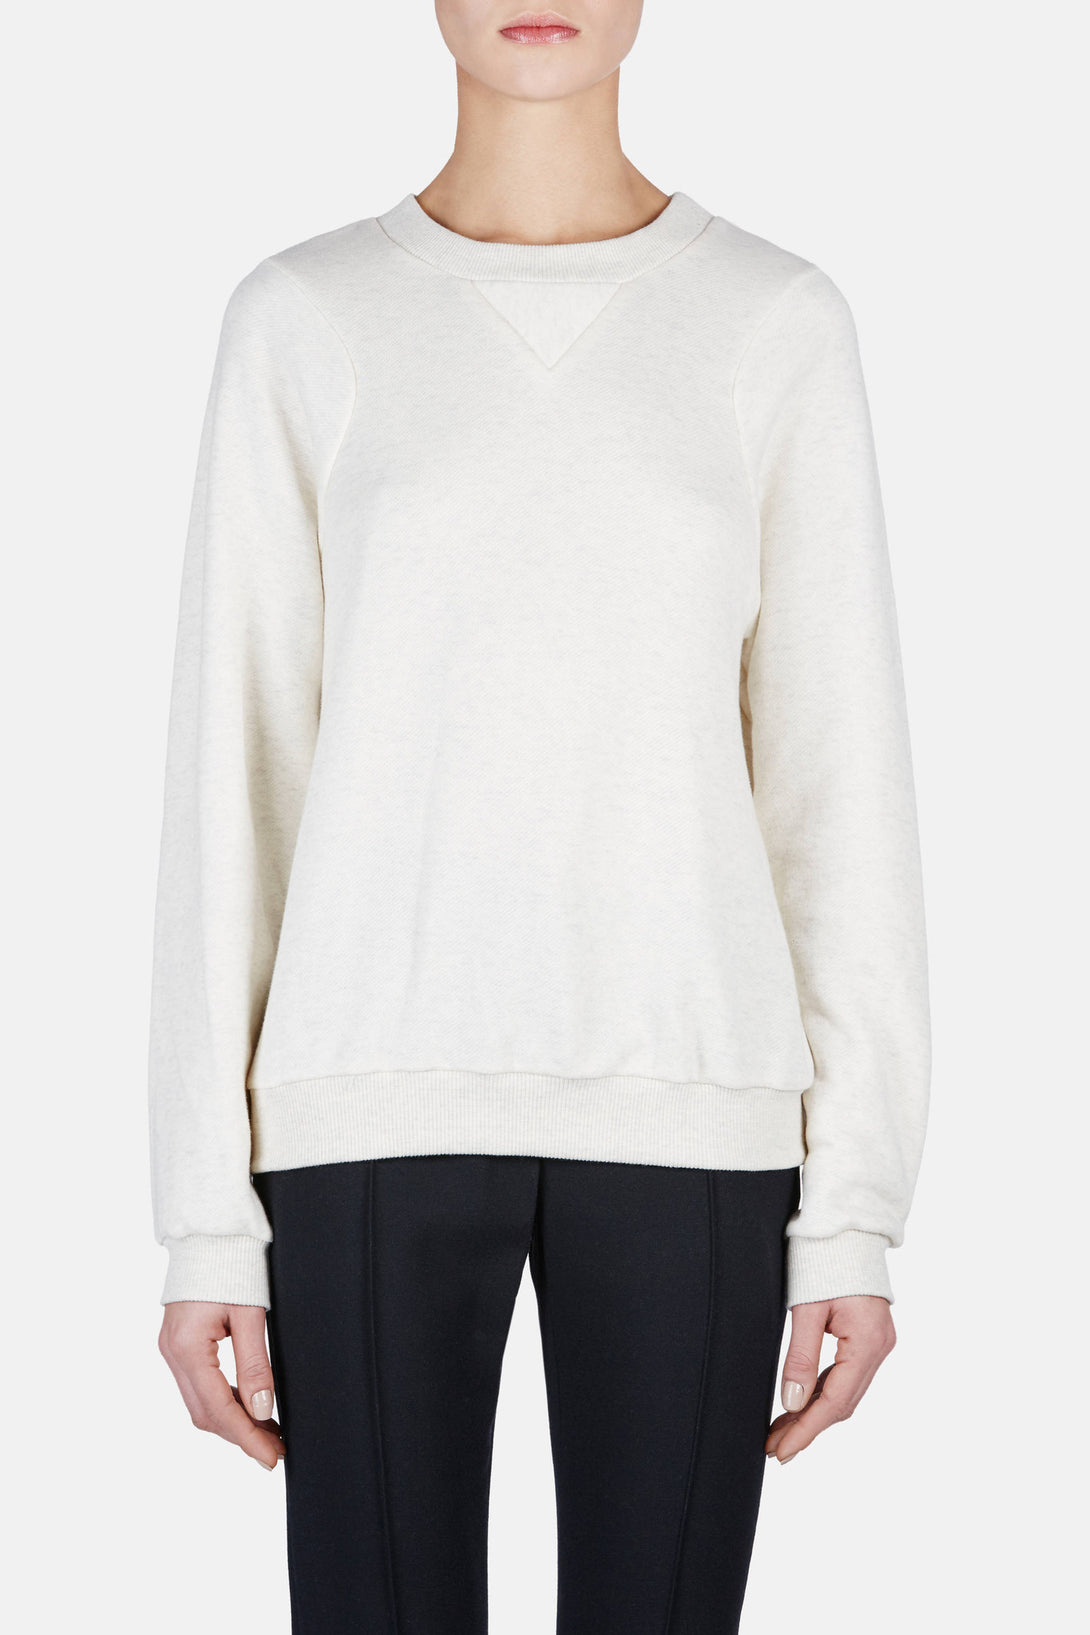 Track Sweatshirt - Heather Ivory